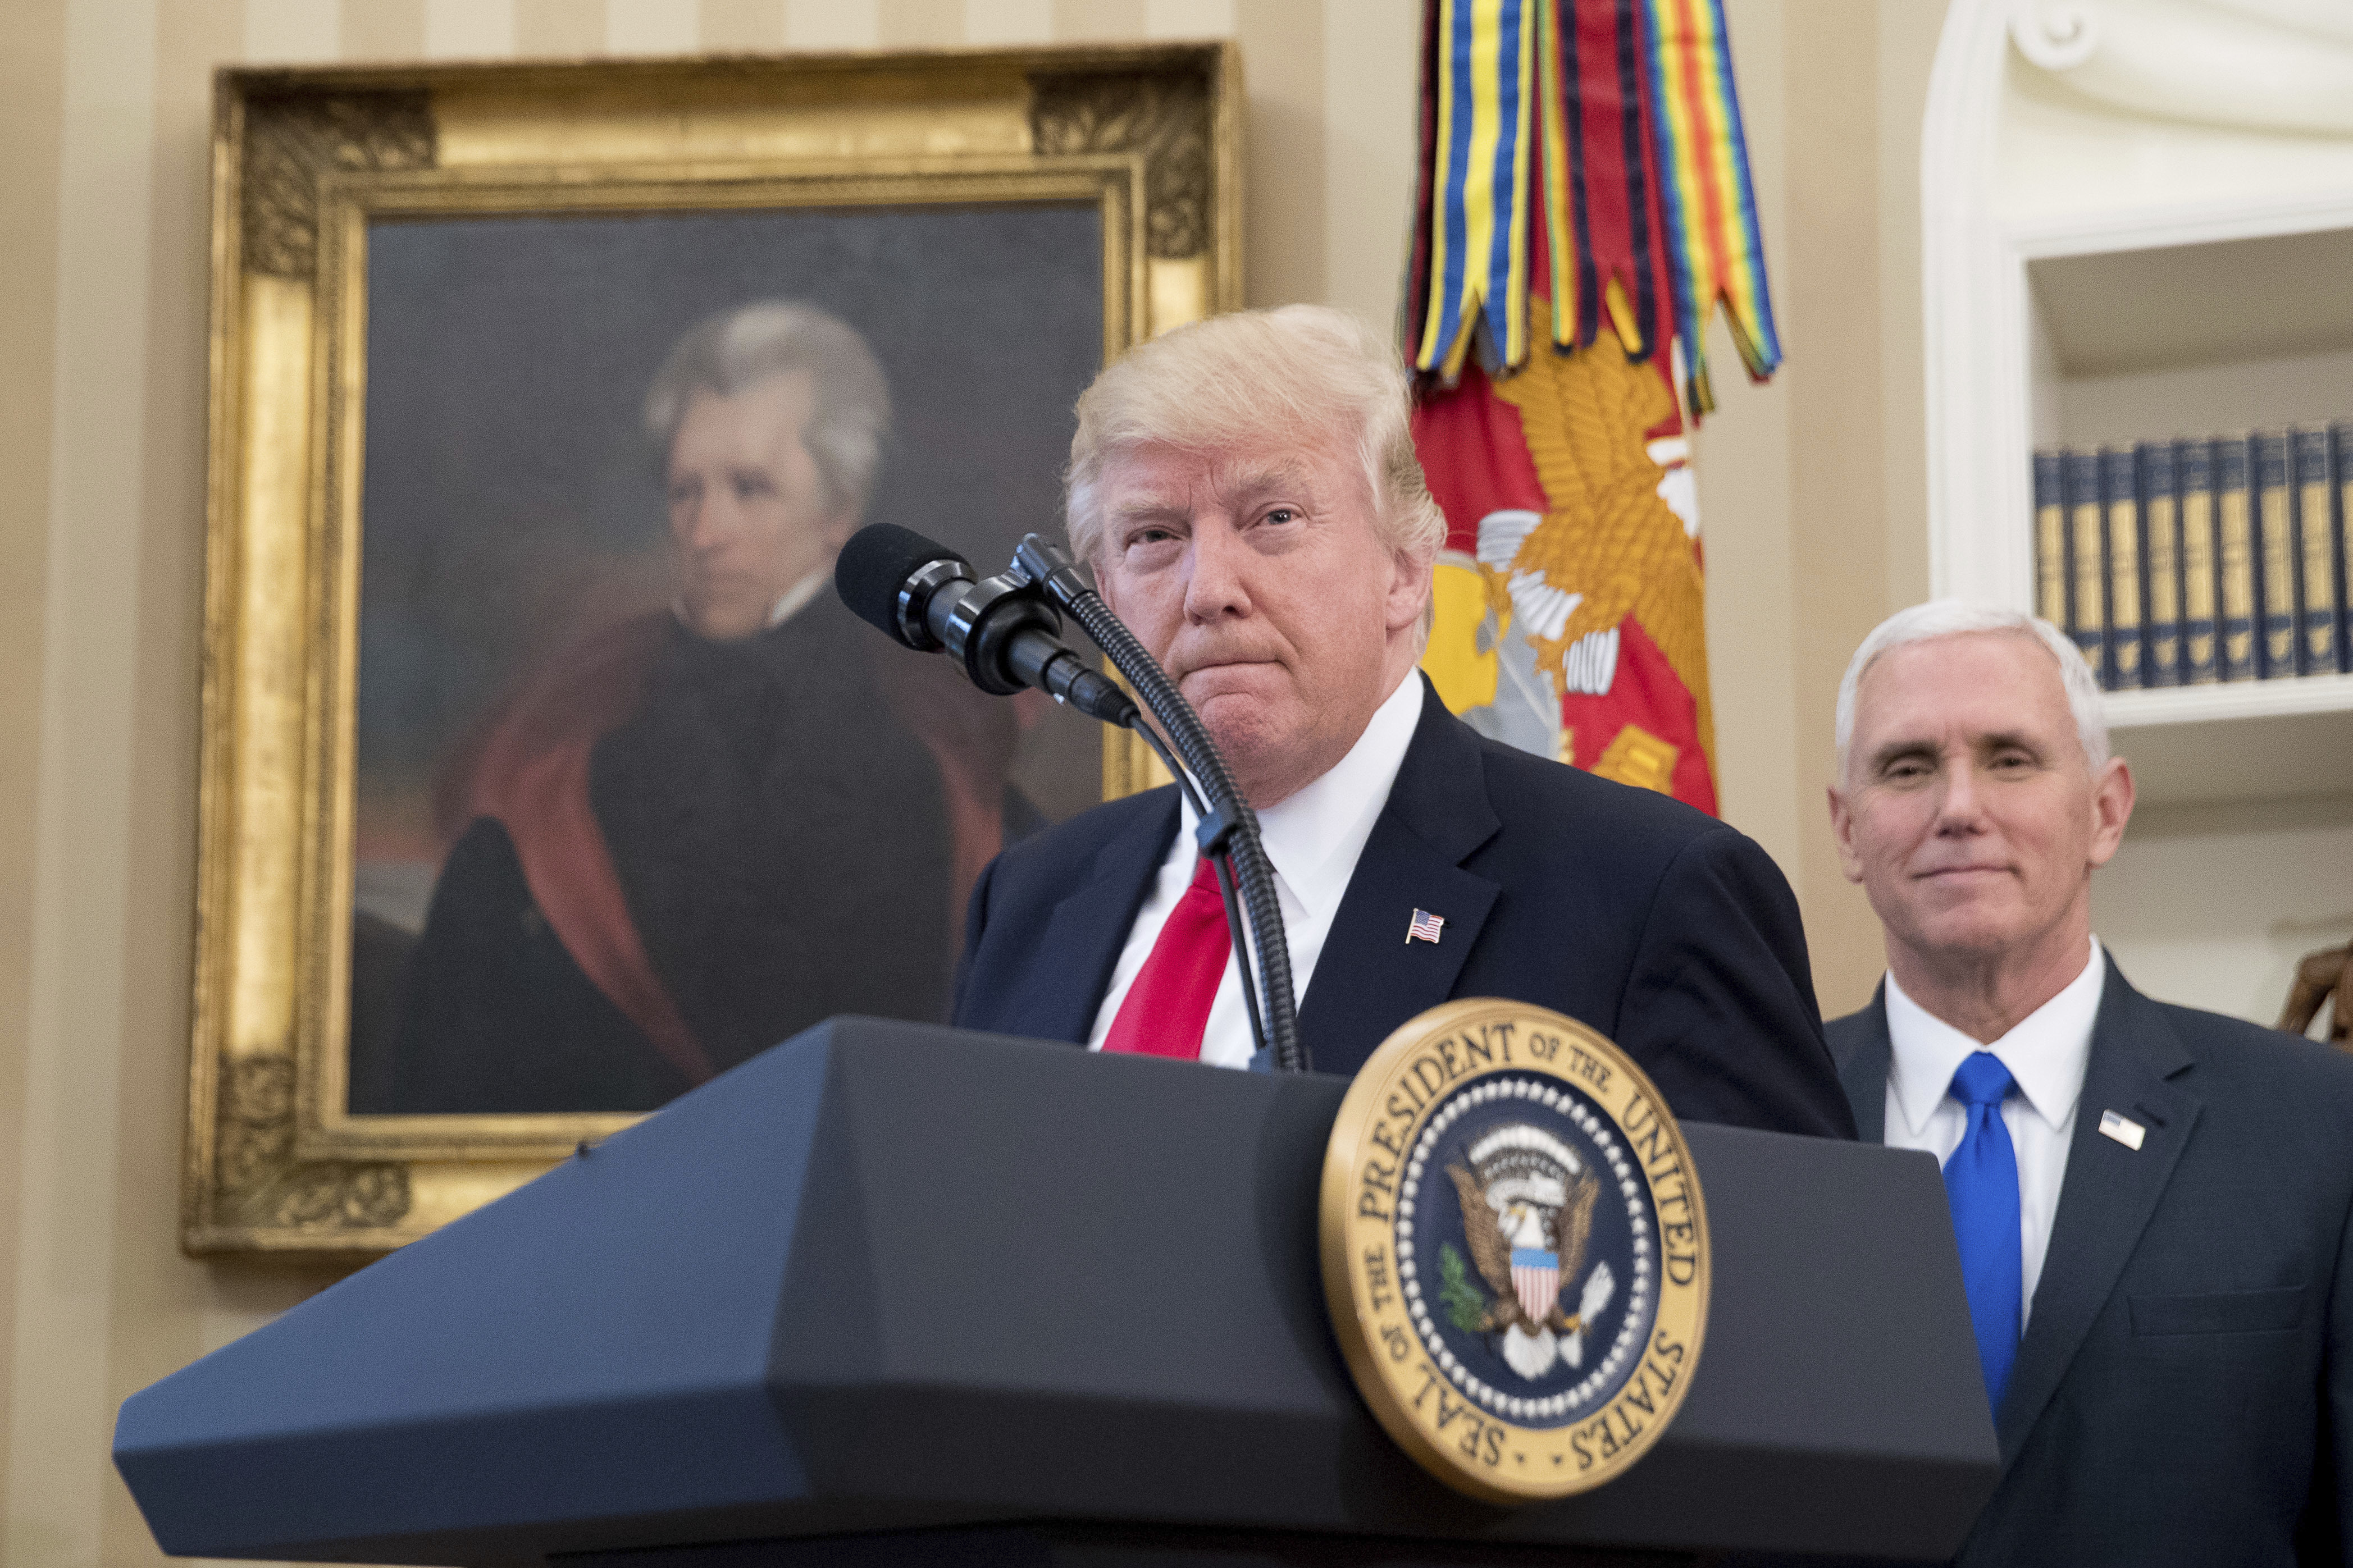 A portrait of President Andrew Jackson hangs on the wall behind President Donald Trump, accompanied by Vice President Mike Pence, in the Oval Office in 2017. (Andrew Harnik, File)